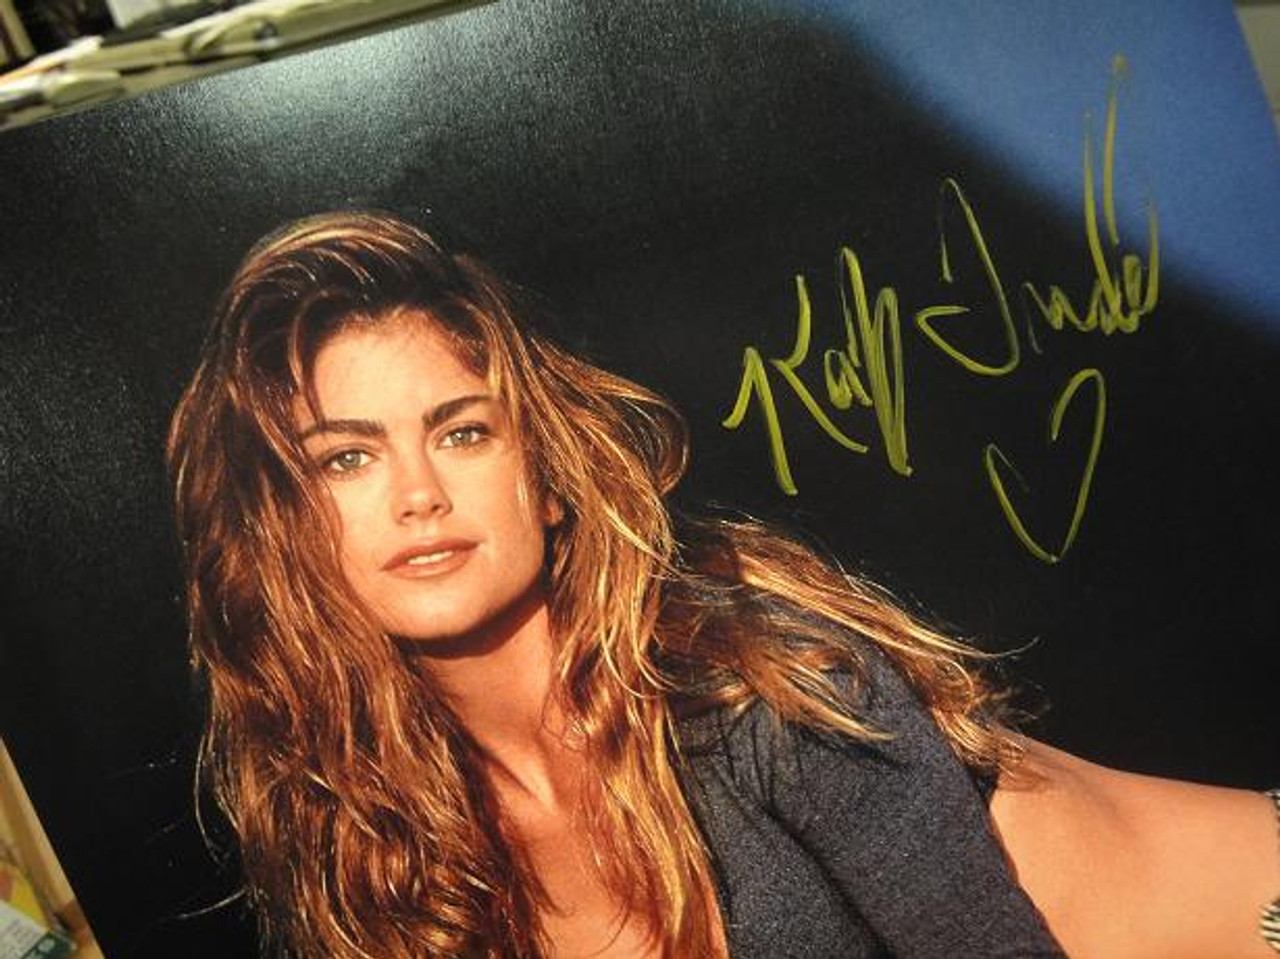 Ireland, Kathy Color Photo Signed Autograph Cheesecake